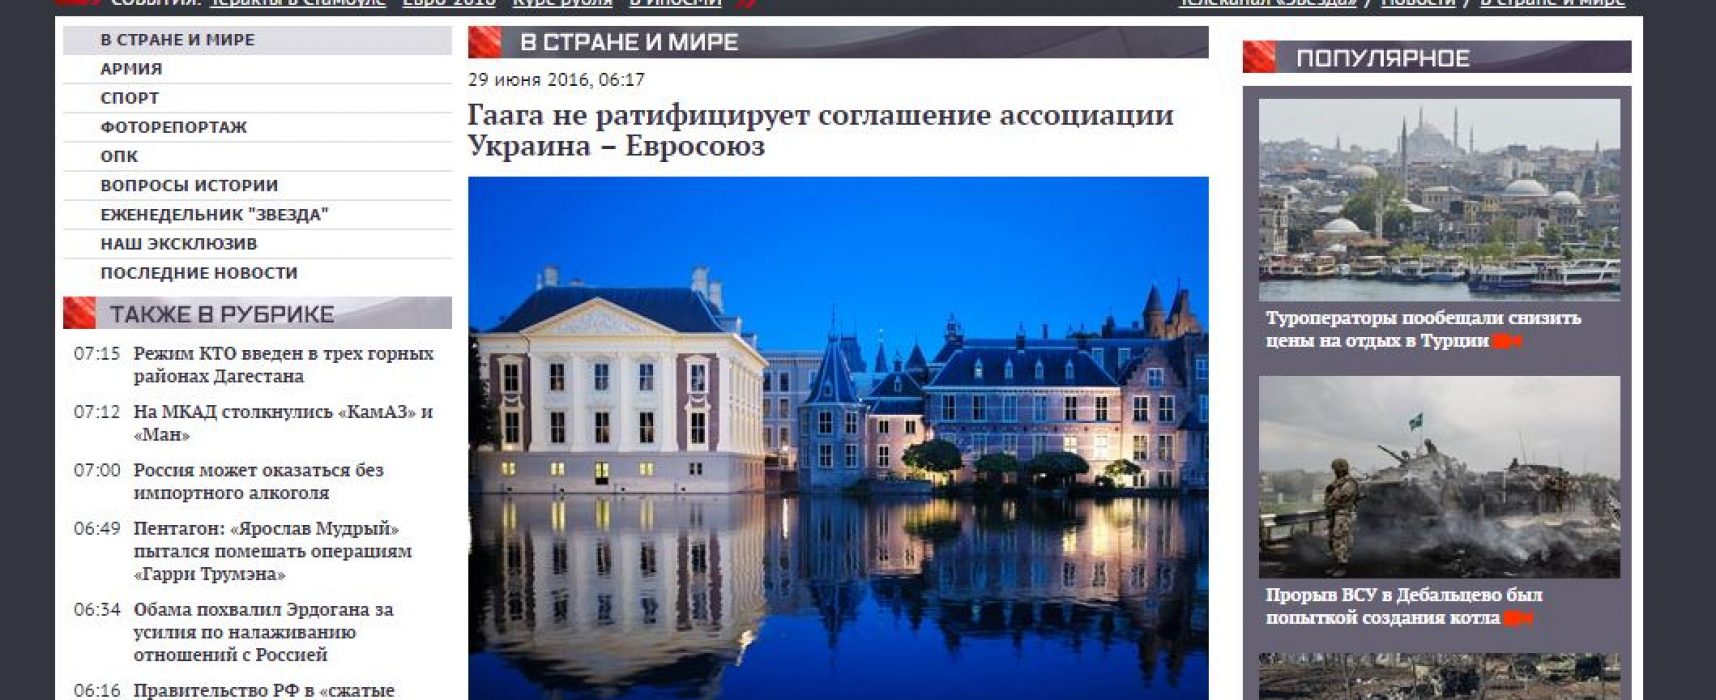 Fake: La Haye a refusé de ratifier l'accord d'association entre l'UE et l'Ukraine